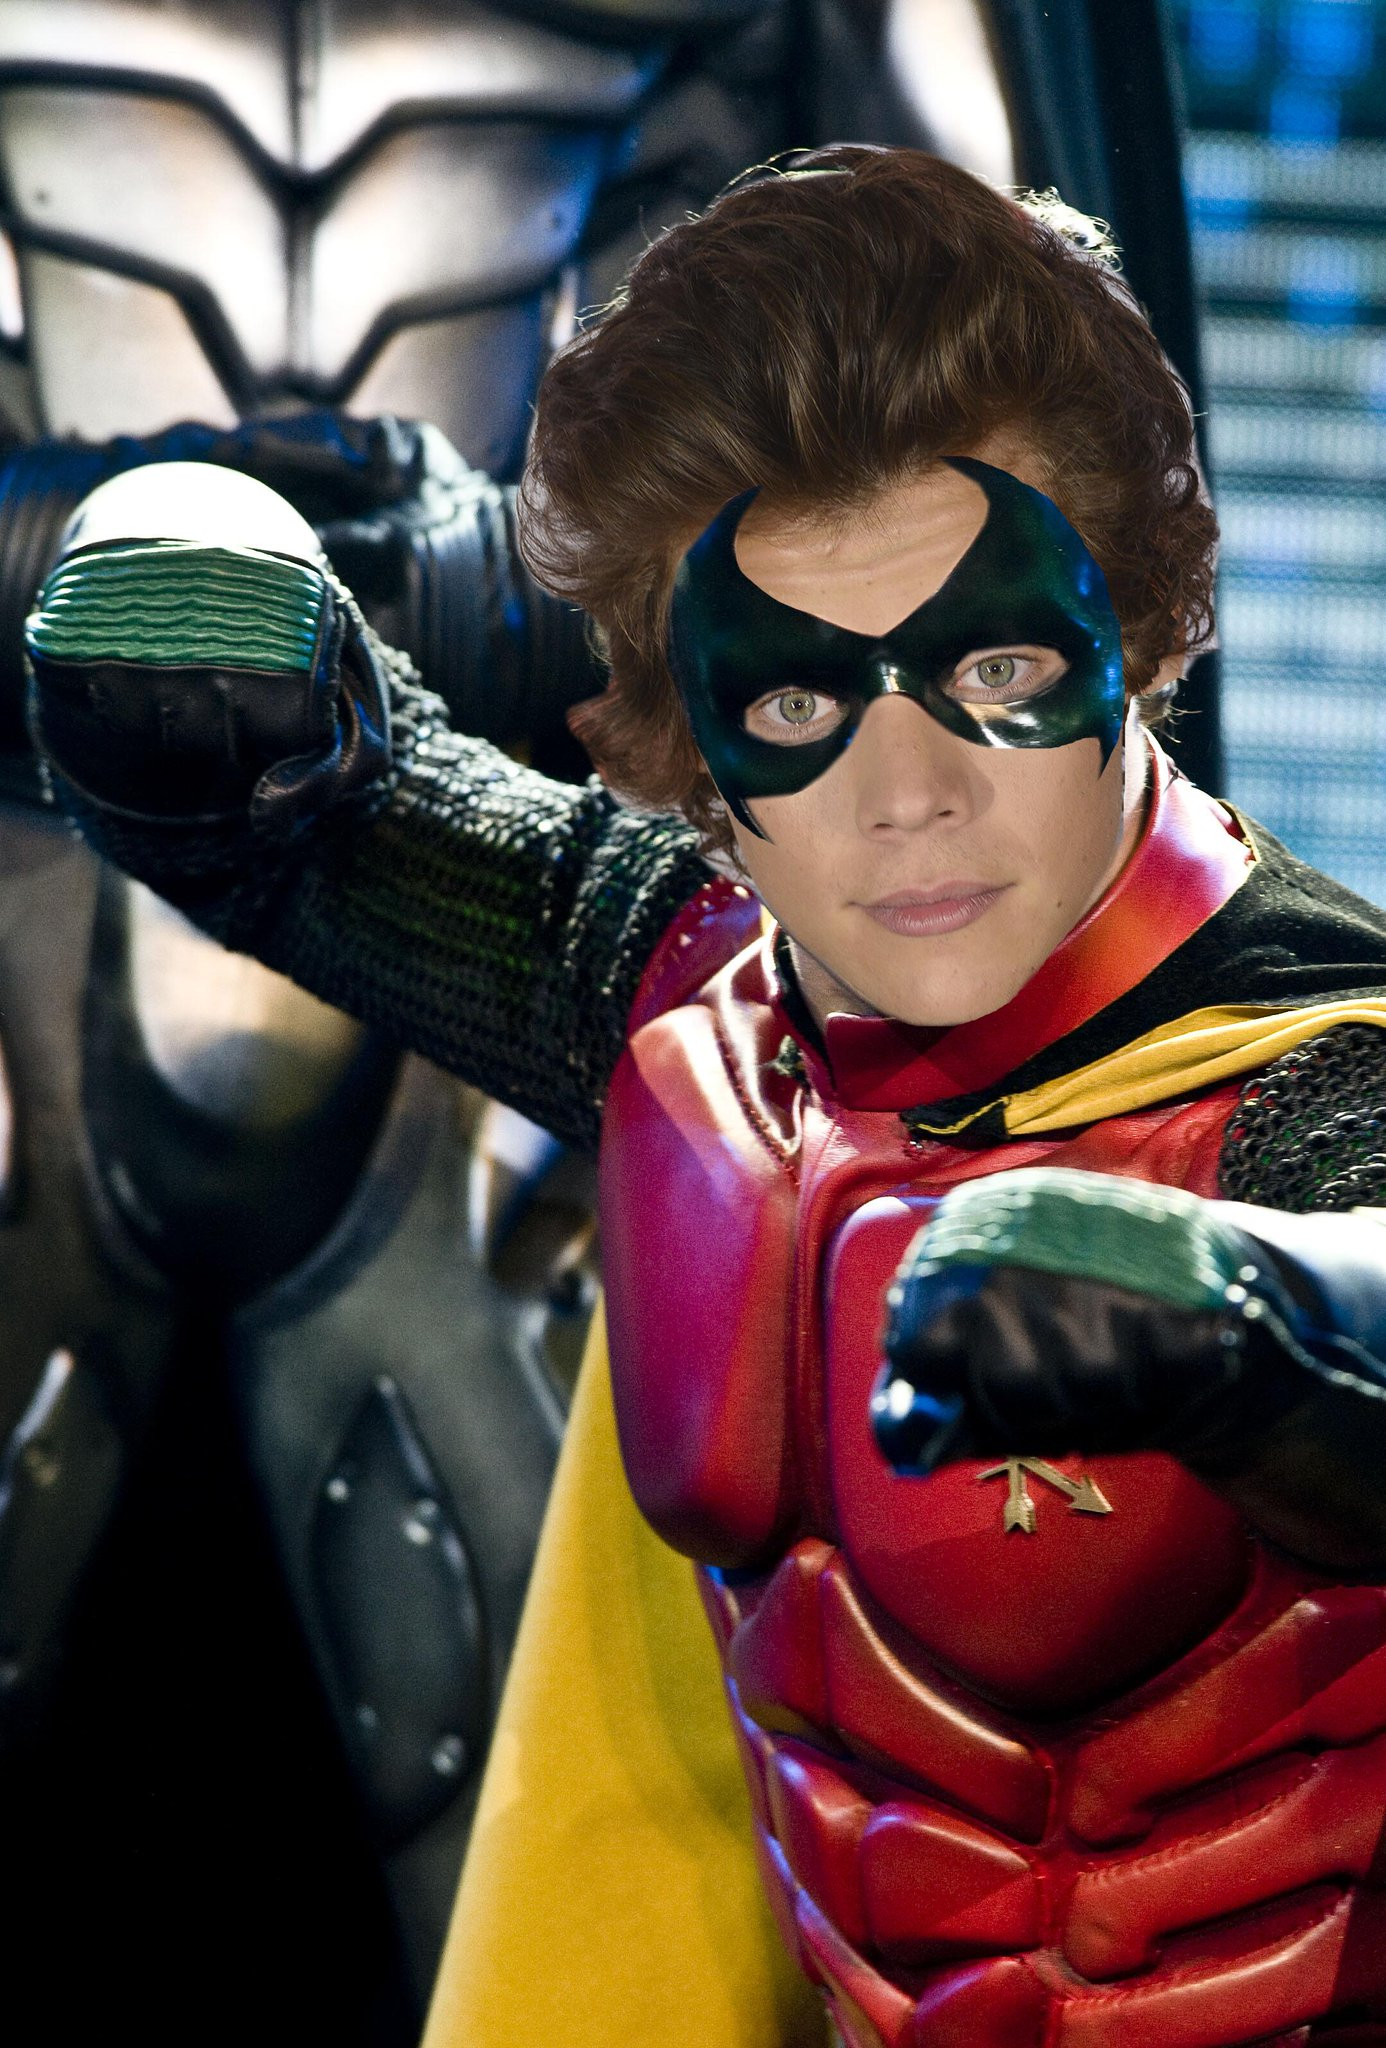 Could @Harry_Styles be Robin in Batman Vs Superman? http://t.co/C9yQdP3S4g http://t.co/OPQATj9Psa